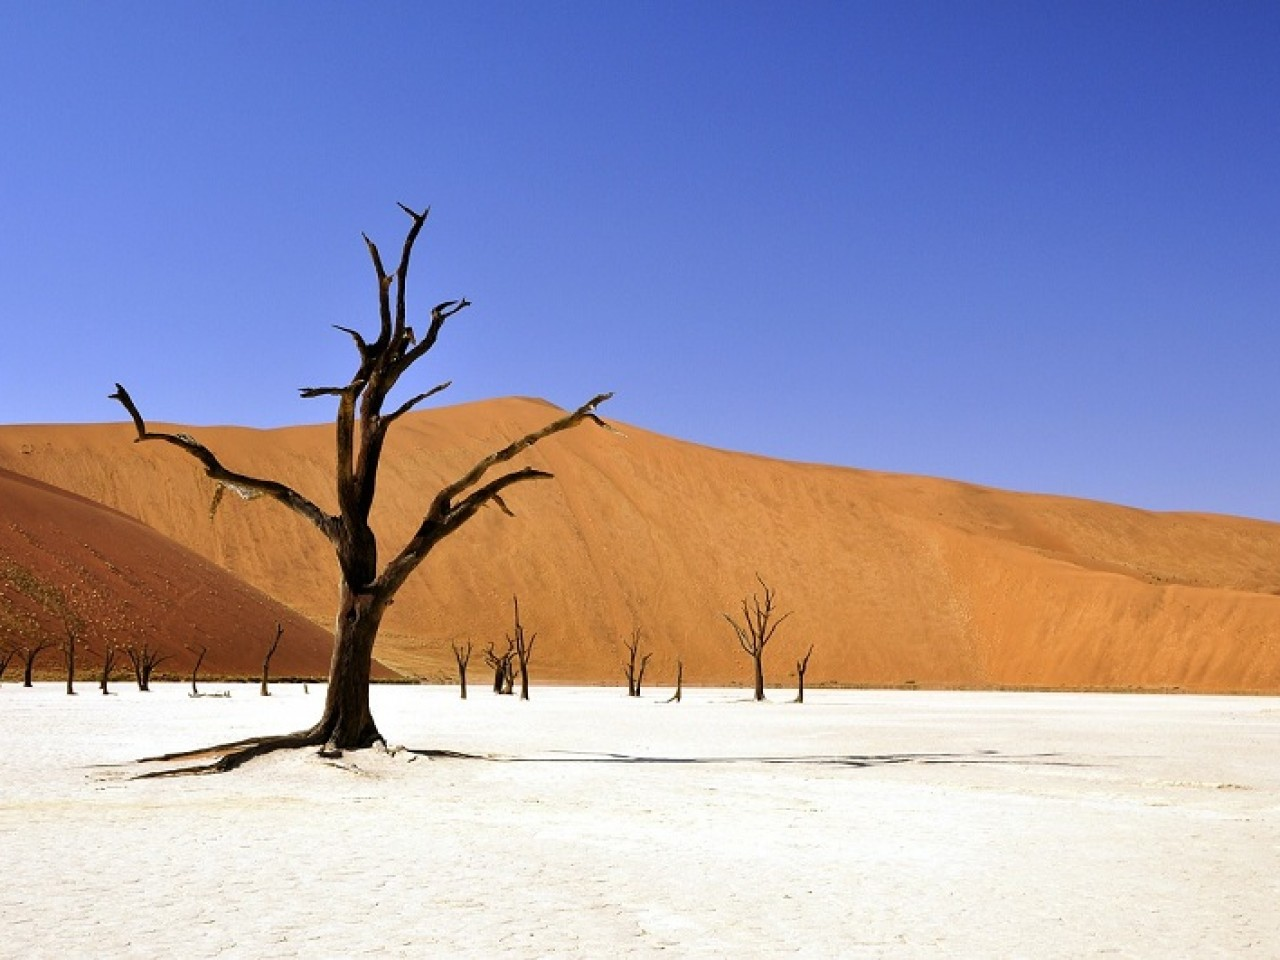 IN NAMIBIA CON ENZA